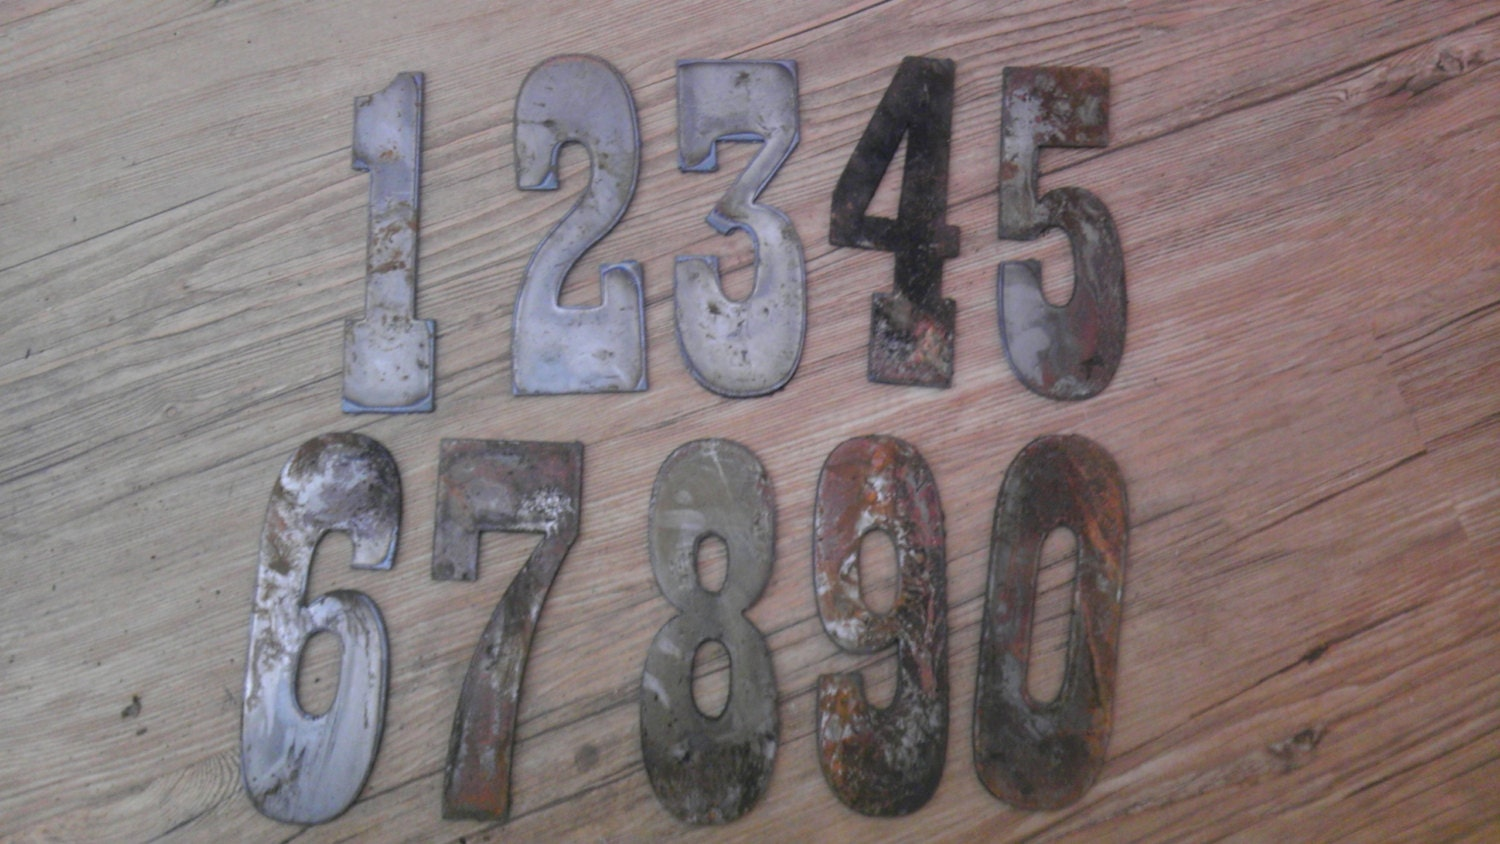 6 Inch Metal Letters Interesting 6 Inch Letters Numbers Per Number Rusty Vintage Western Style Inspiration